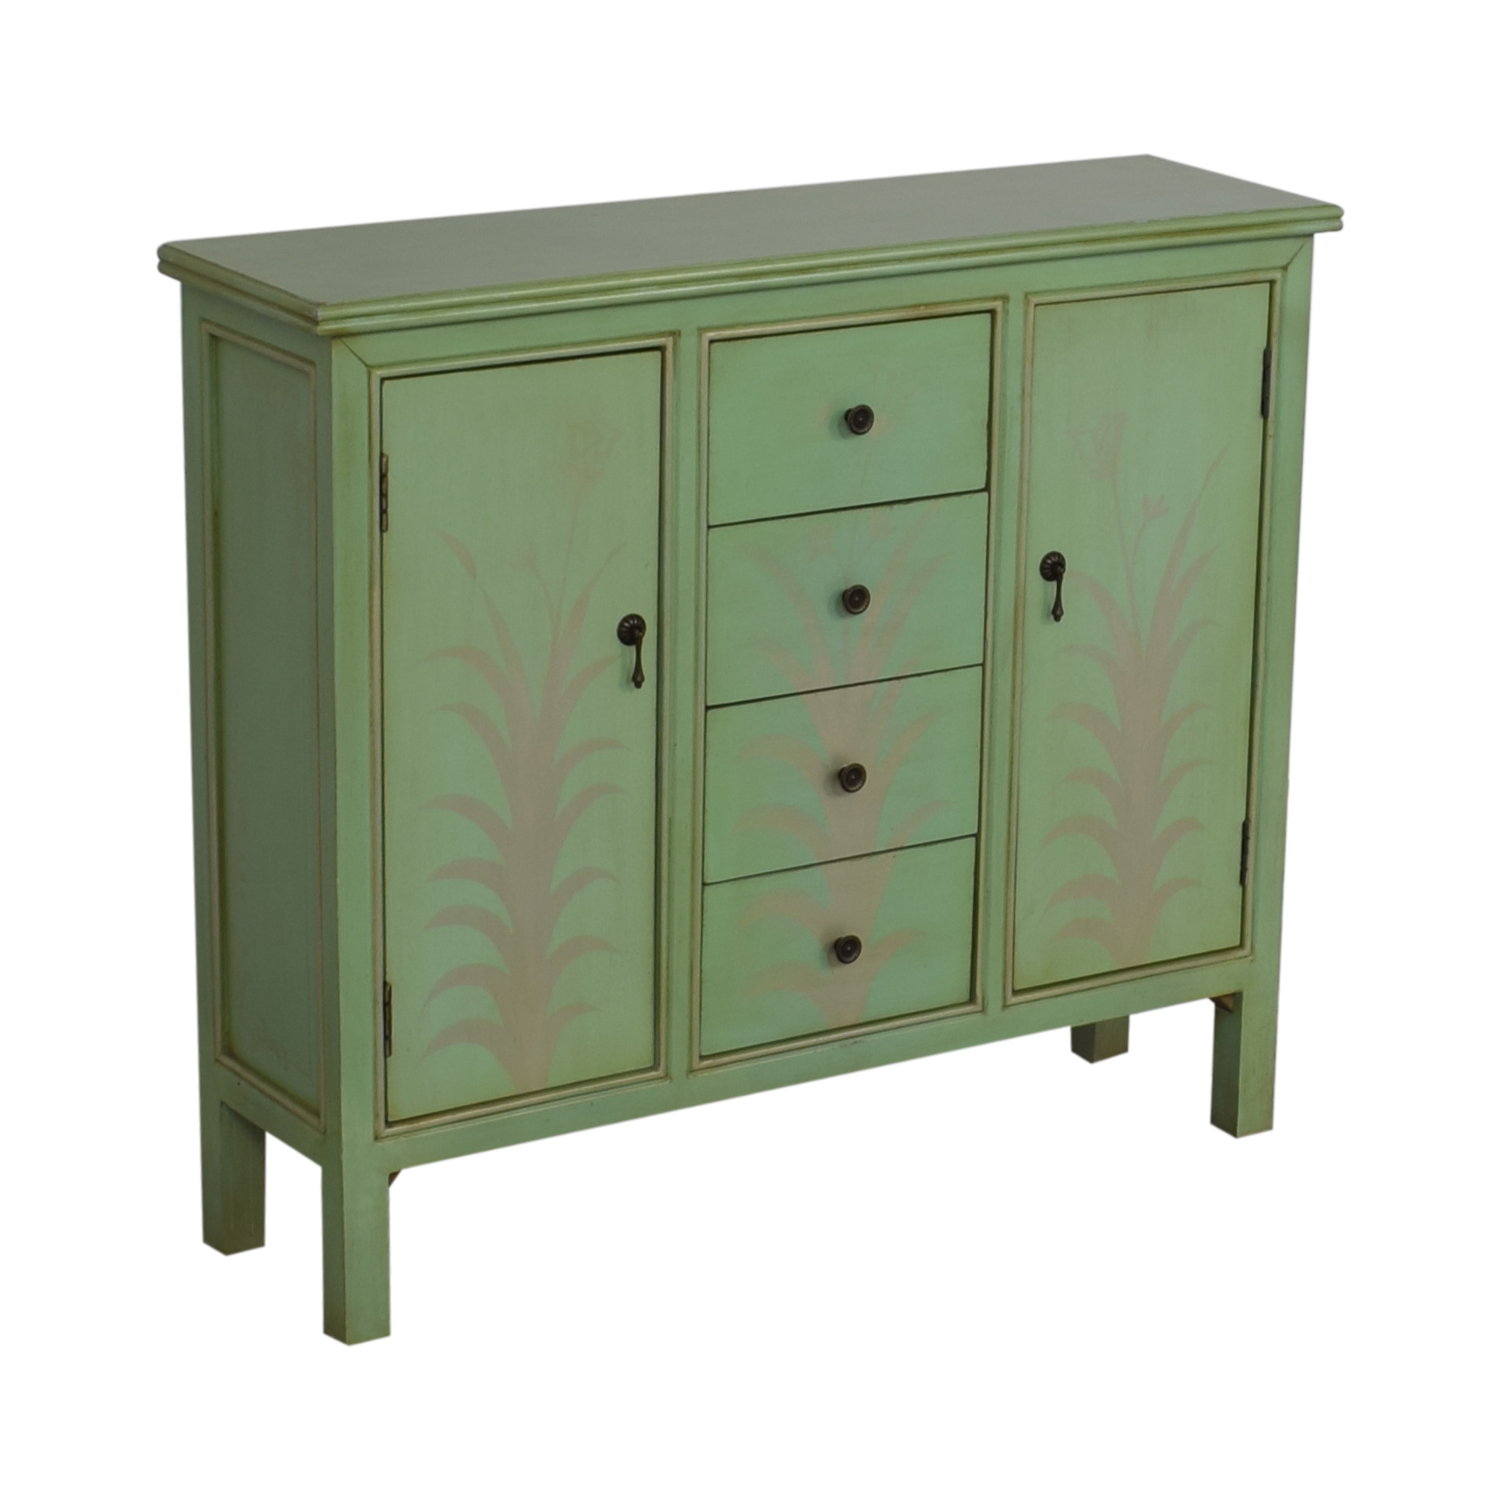 Raymour & Flanigan Mint Green Accent Chest / Cabinets & Sideboards